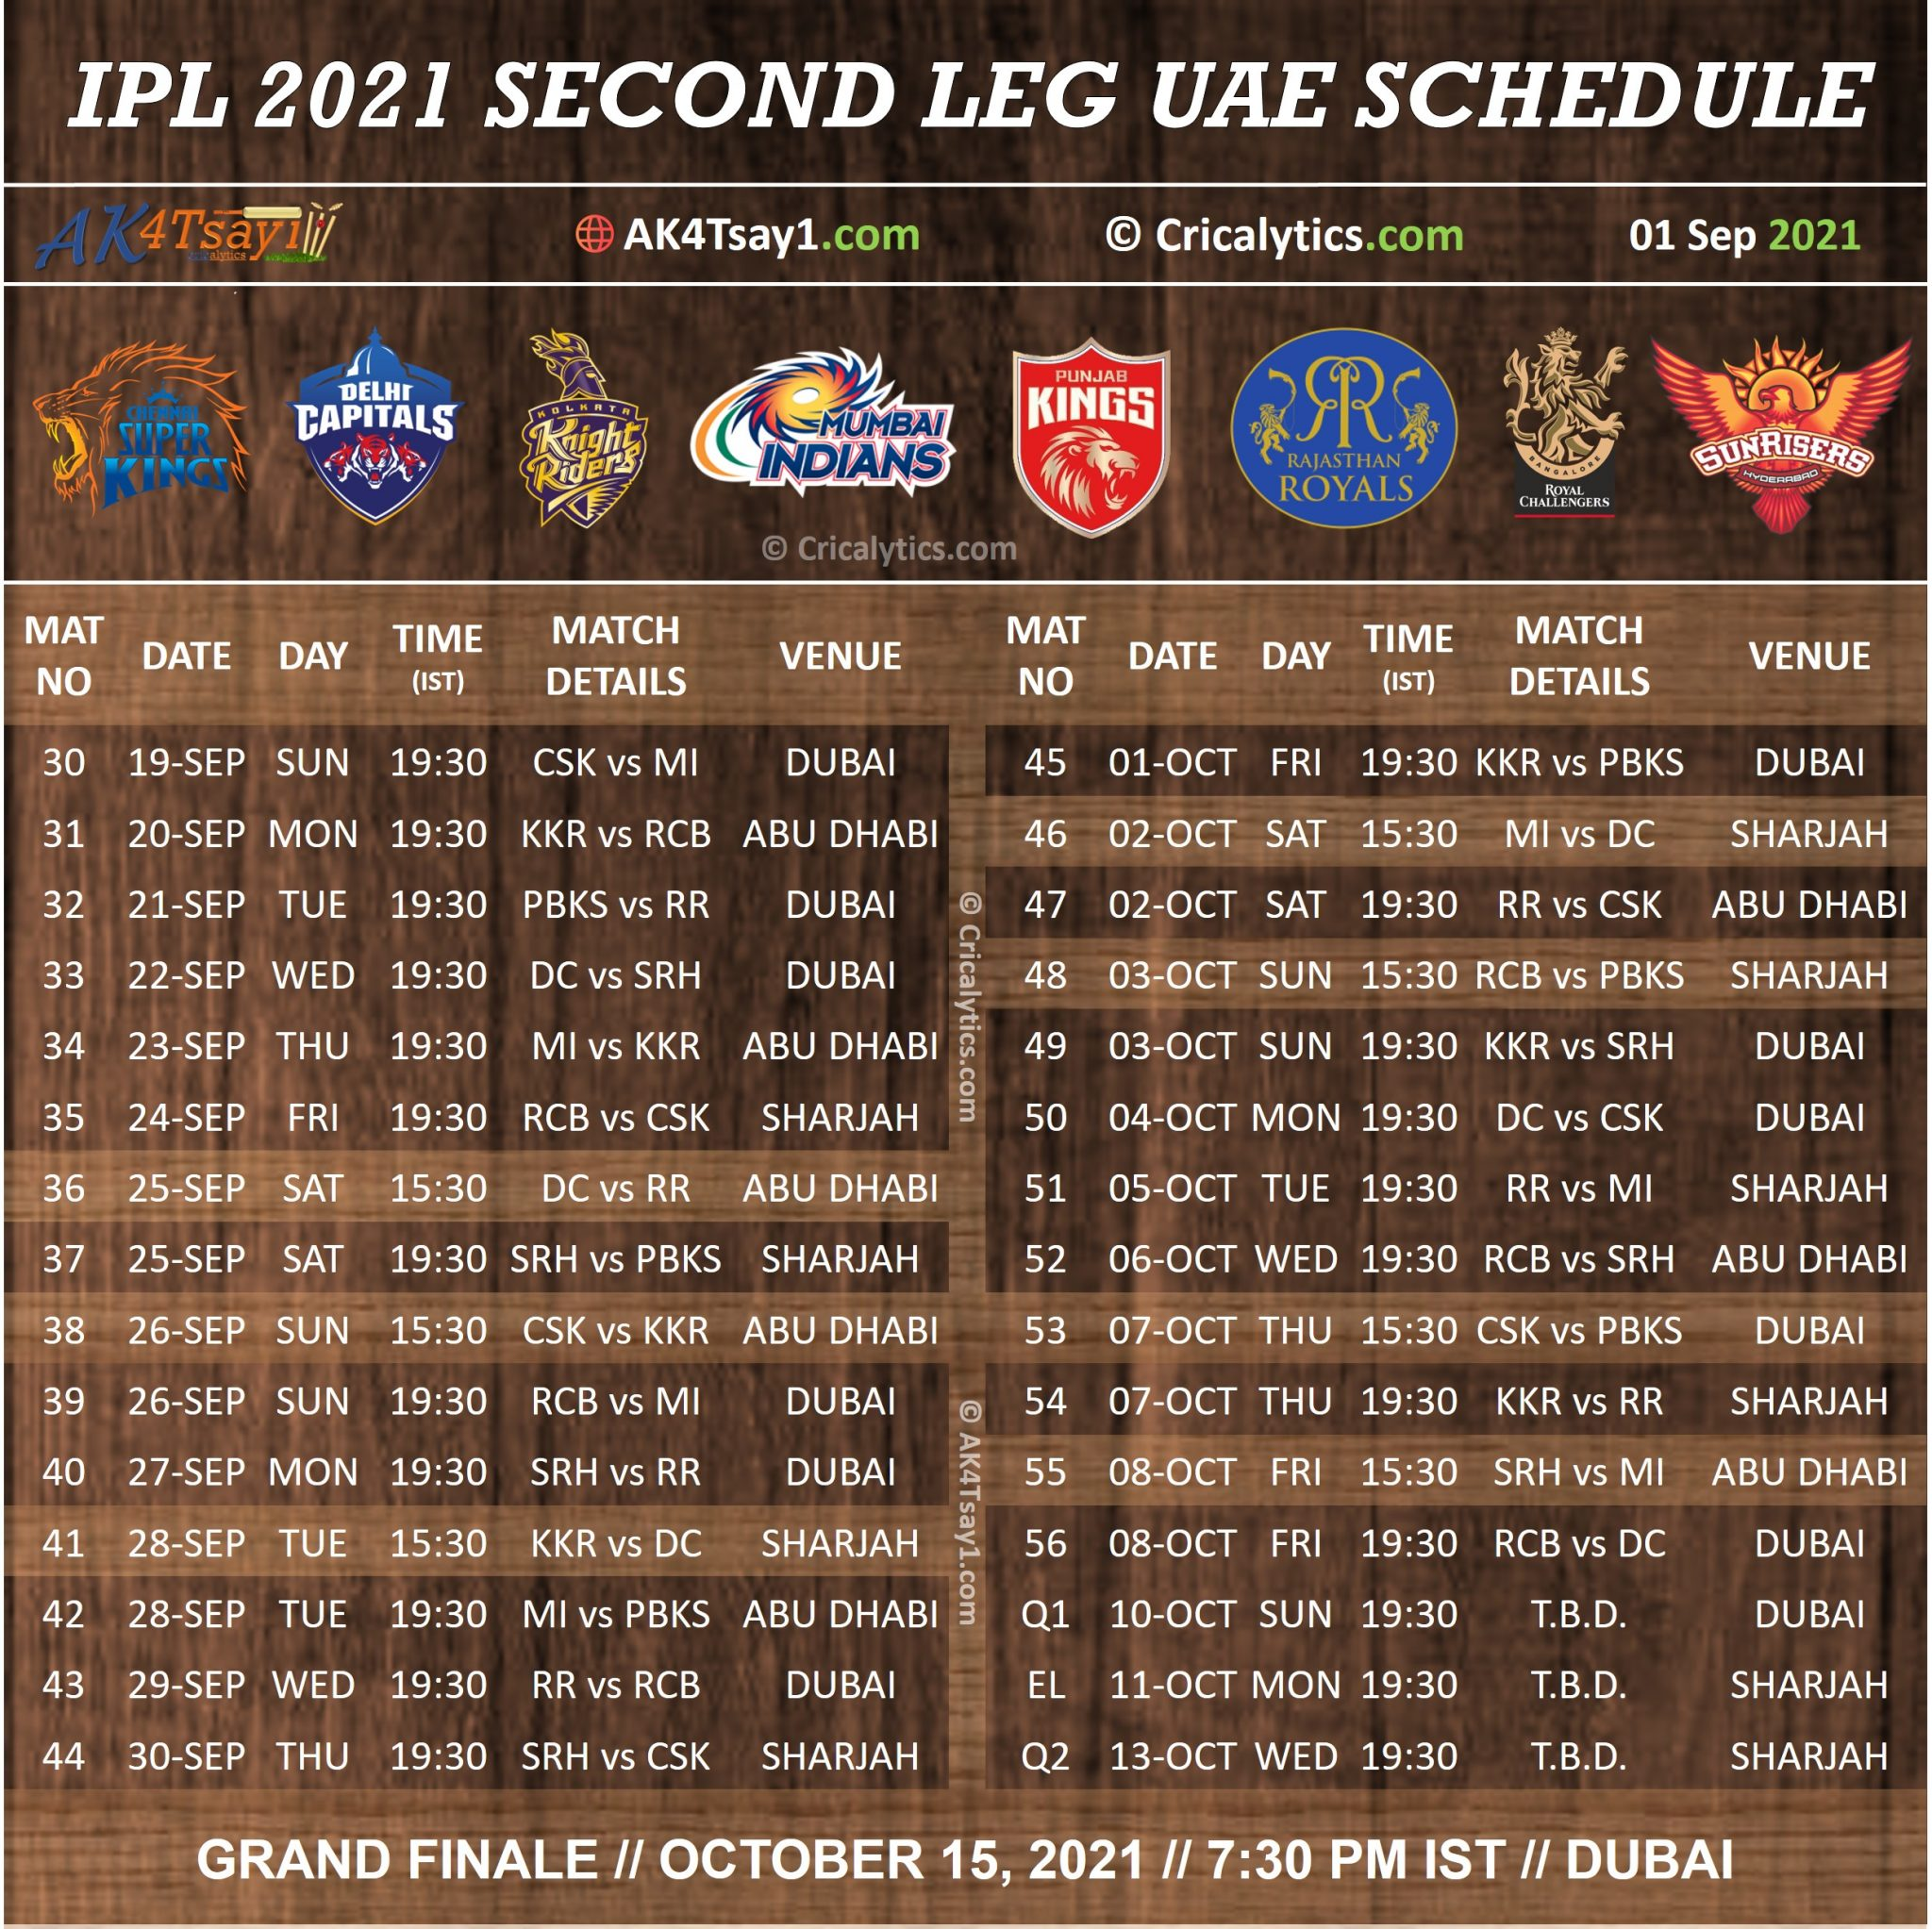 IPL 2021 second leg uae official new schedule pdf download now